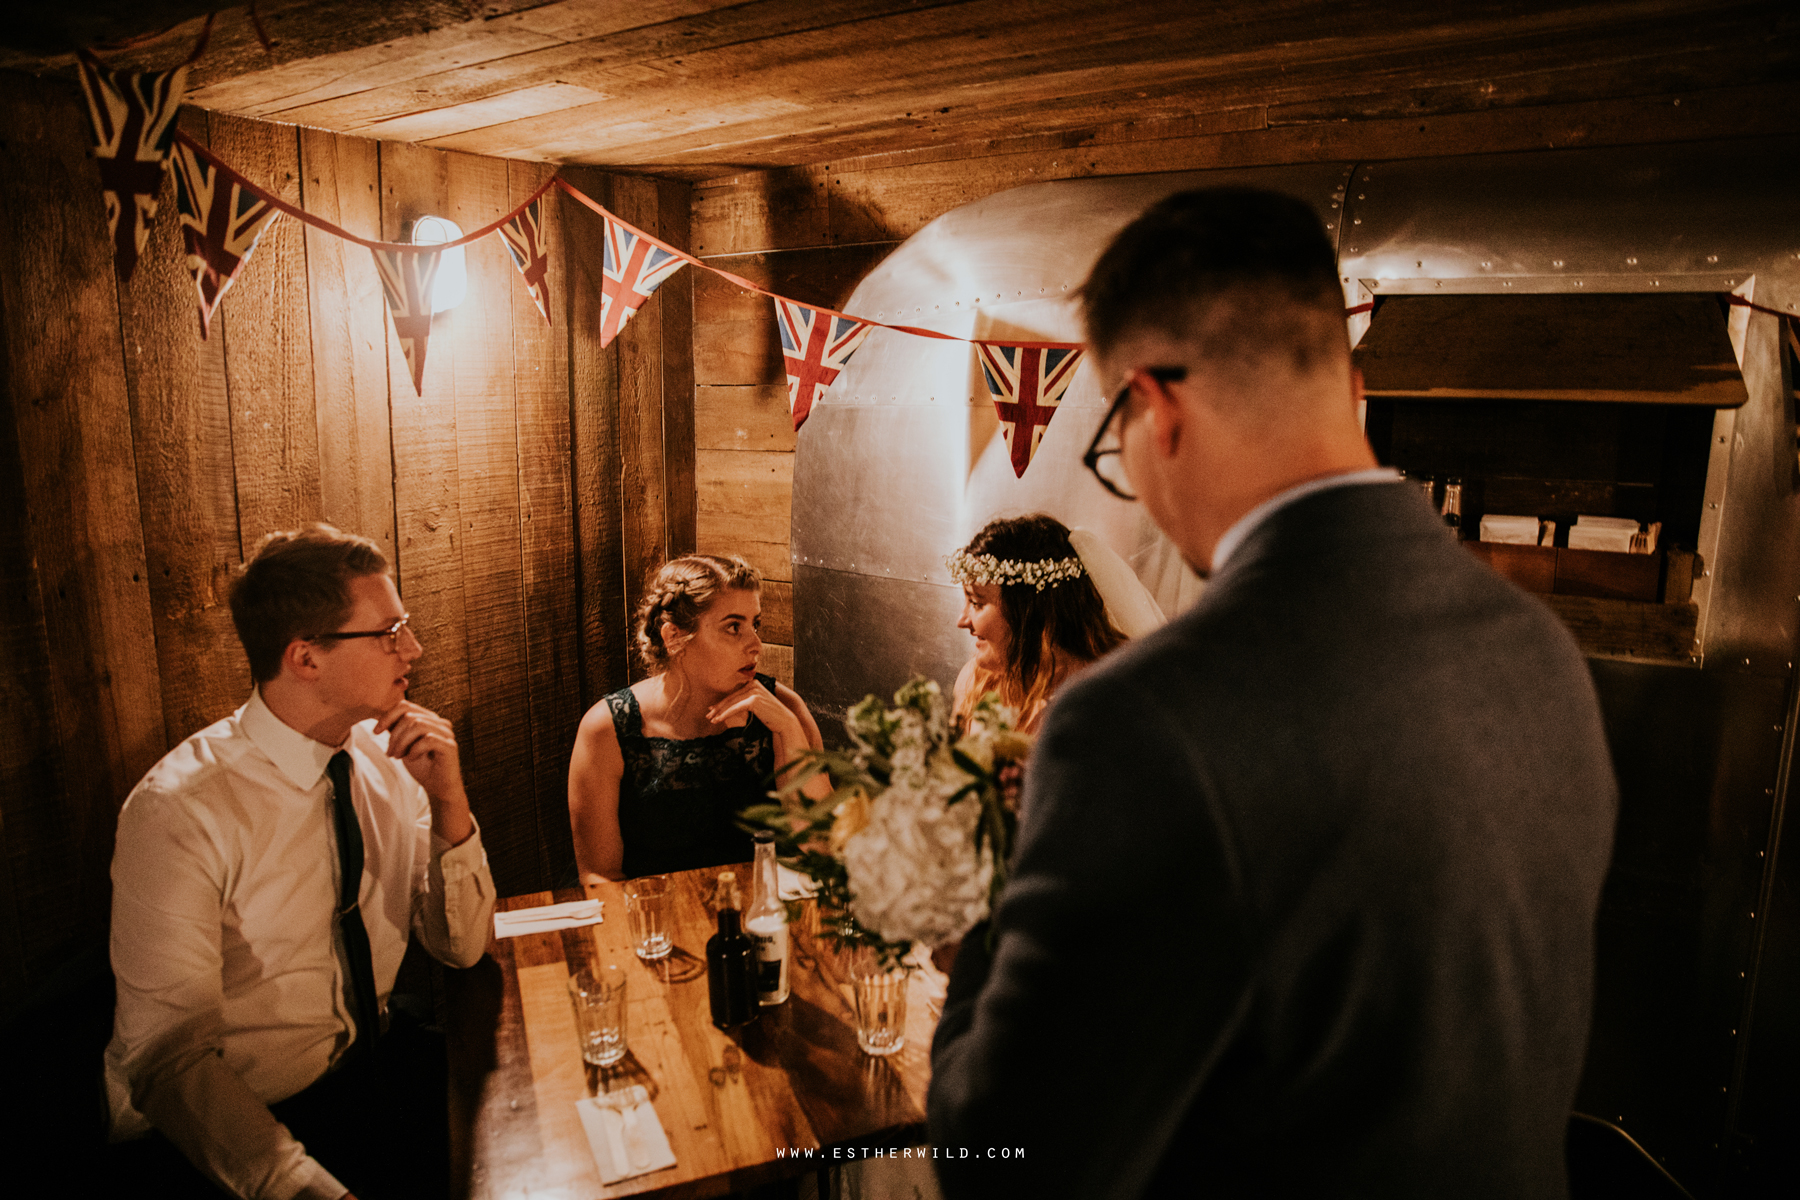 Norwich_Castle_Arcade_Grosvenor_Chip_Birdcage_Cathedral_Cloisters_Refectory_Wedding_Photography_Esther_Wild_Photographer_Norfolk_Kings_Lynn_3R8A1385.jpg